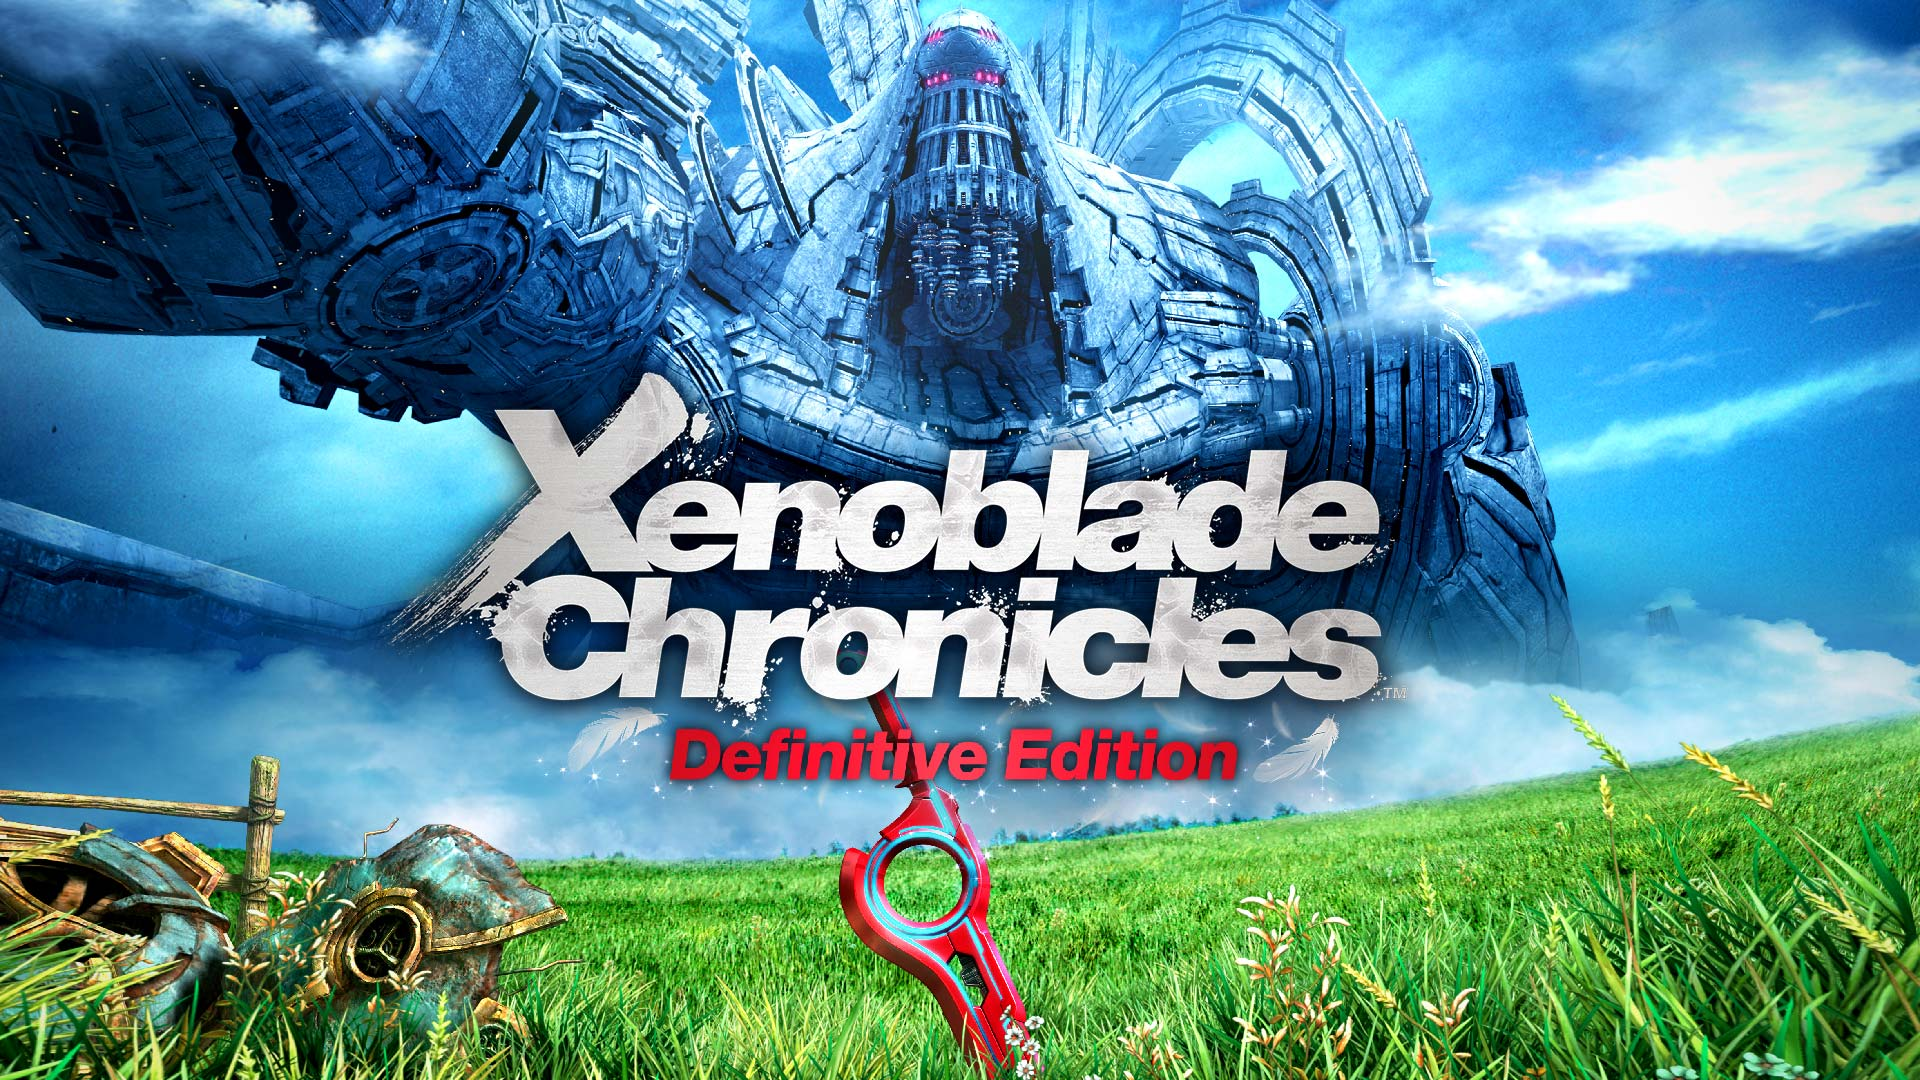 xenoblade chronicles, love source